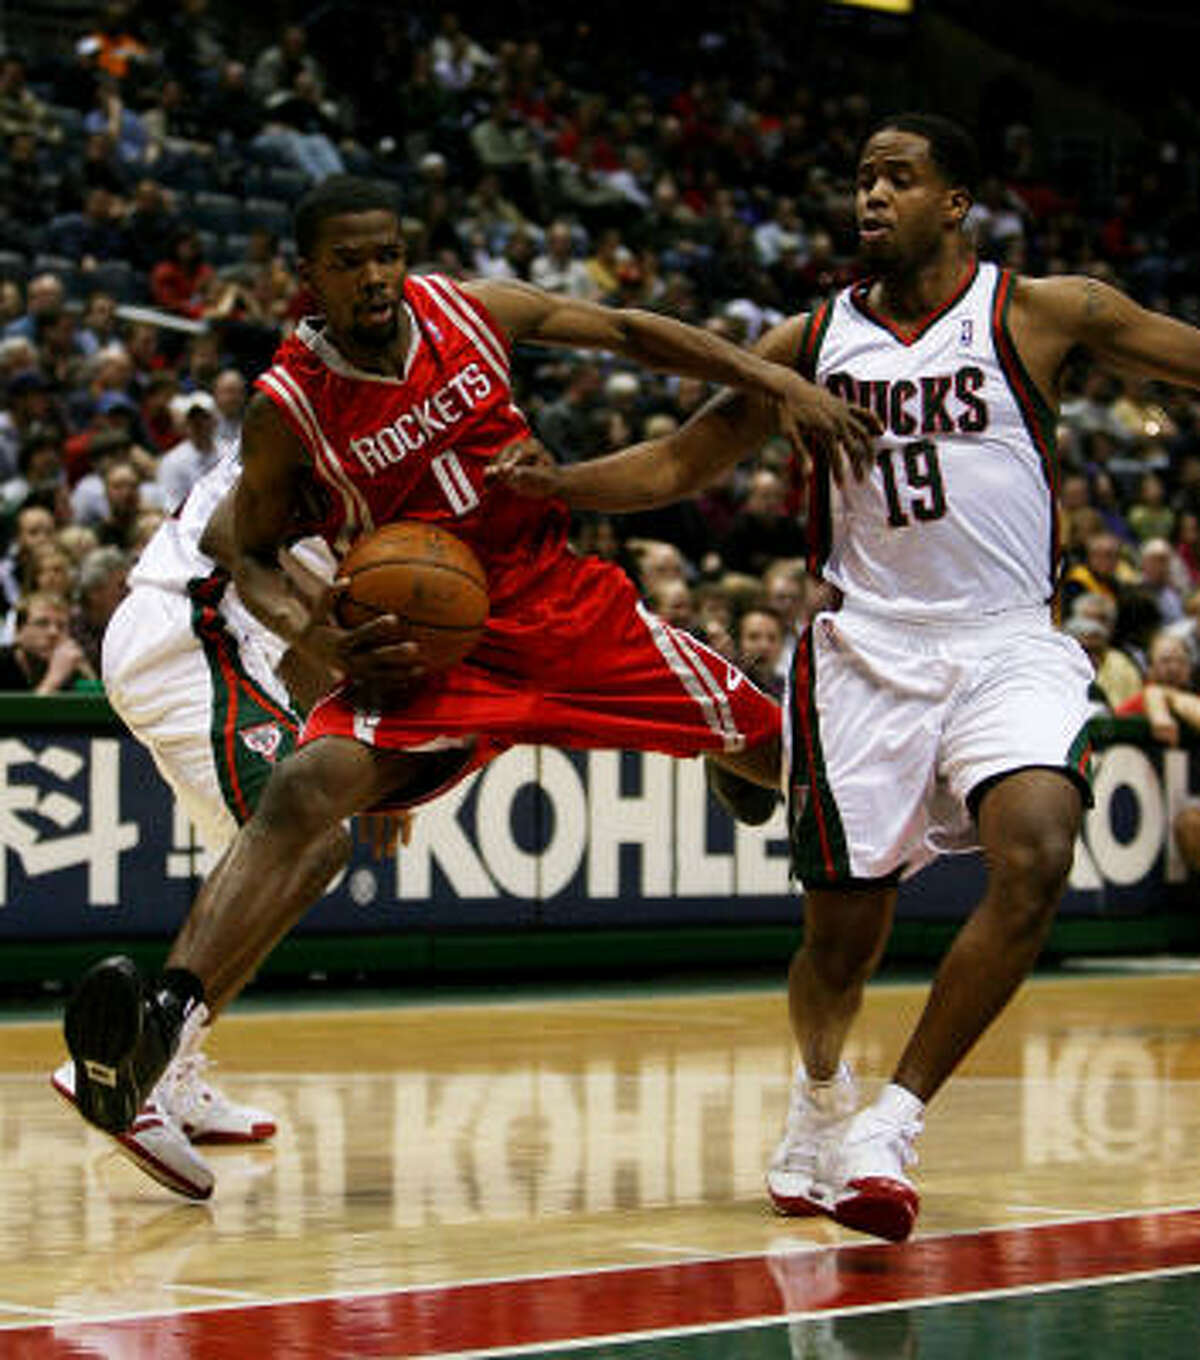 Feb. 10, Rockets lose to Bucks 124-112 . Aaron Brooks, left, and the Rockets surrendered a season-high for points allowed and fell to a sub-.500 team for the 11th time this season in a 124-112 loss to Damon Jones and the Bucks in Milwaukee. Statistics | Record: 31-21